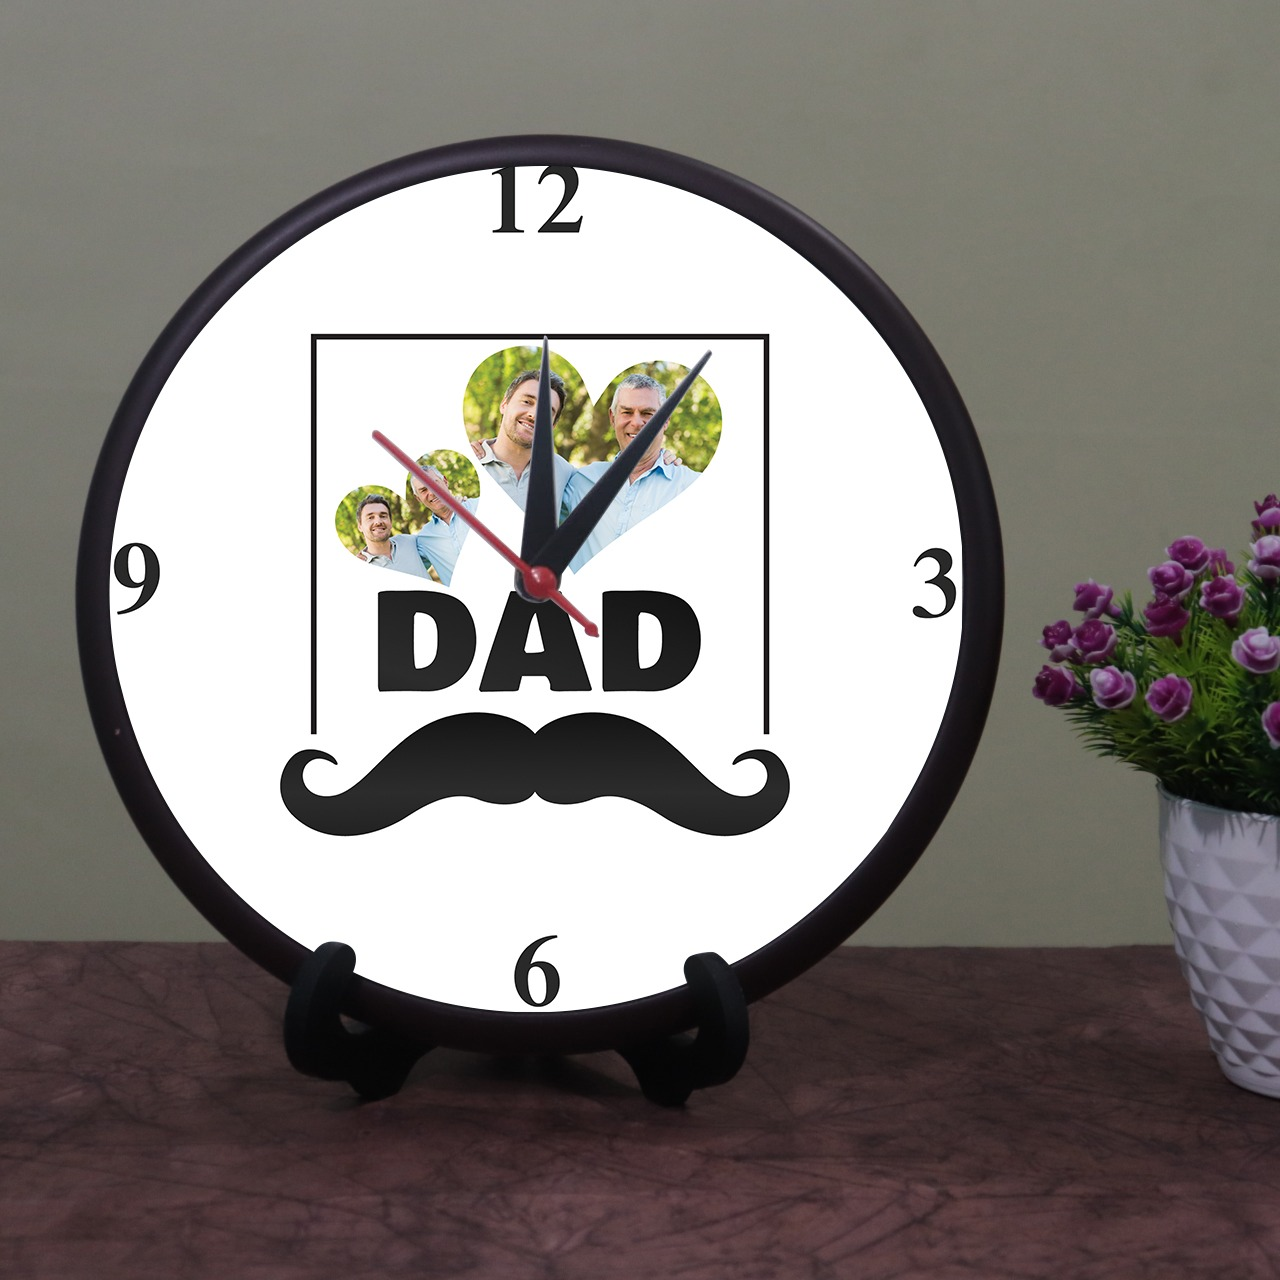 Dad Personalized Photo Wall Clock